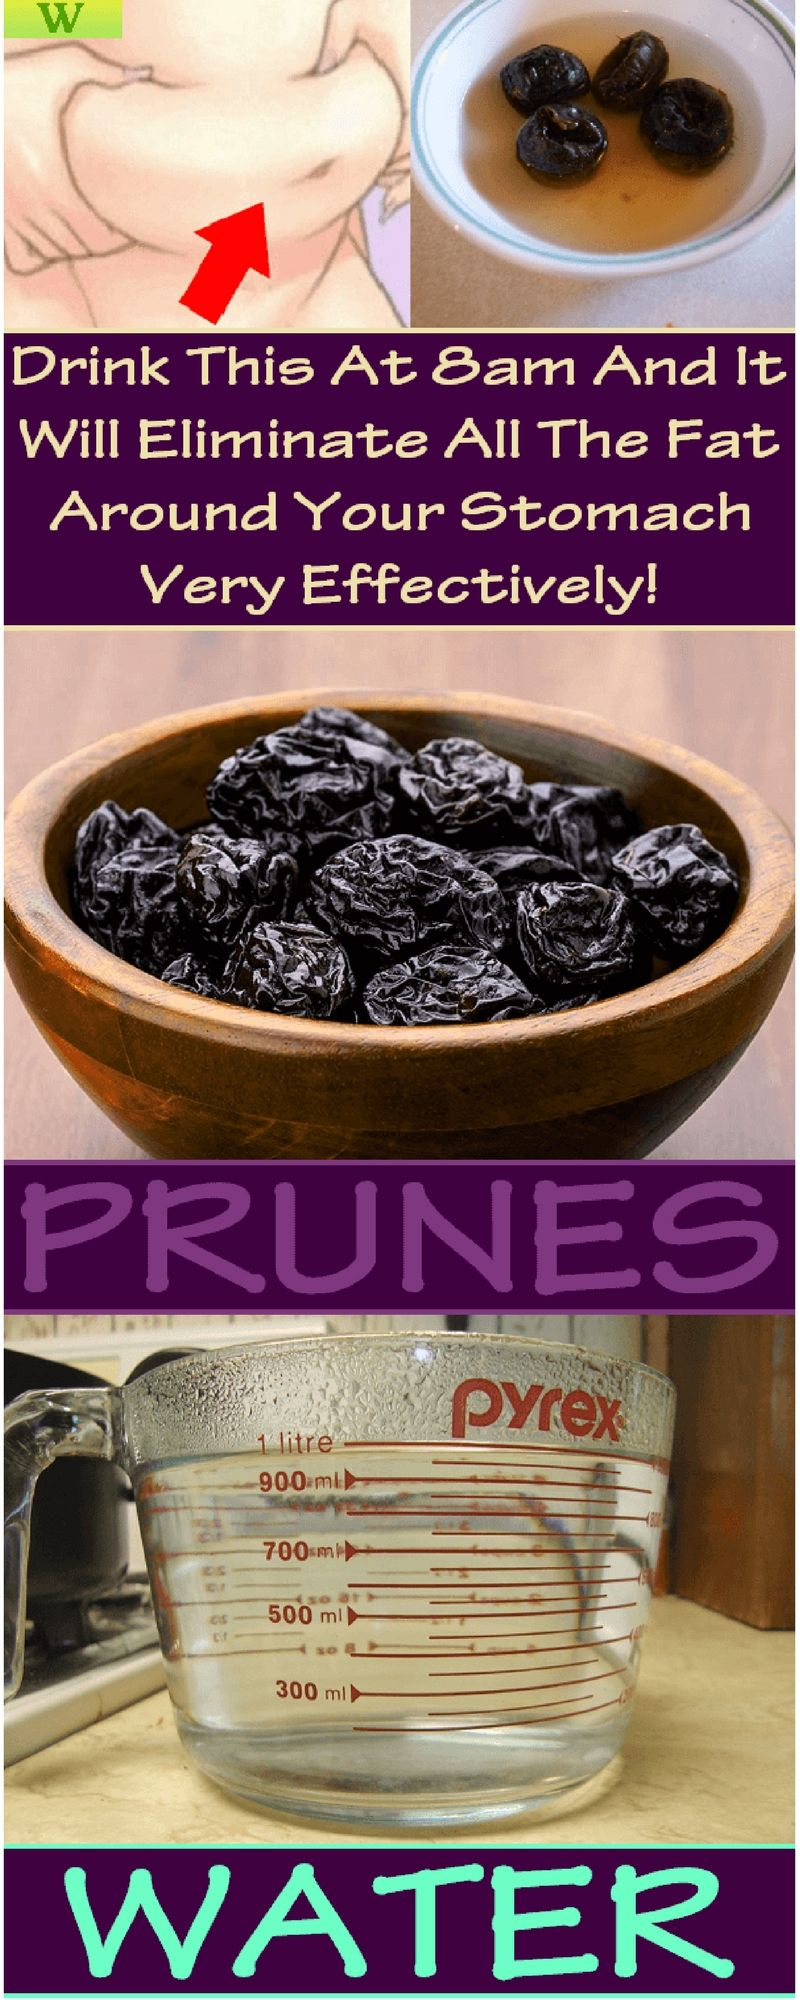 Prunes: a Super Food for Weight Loss Not really recommendations